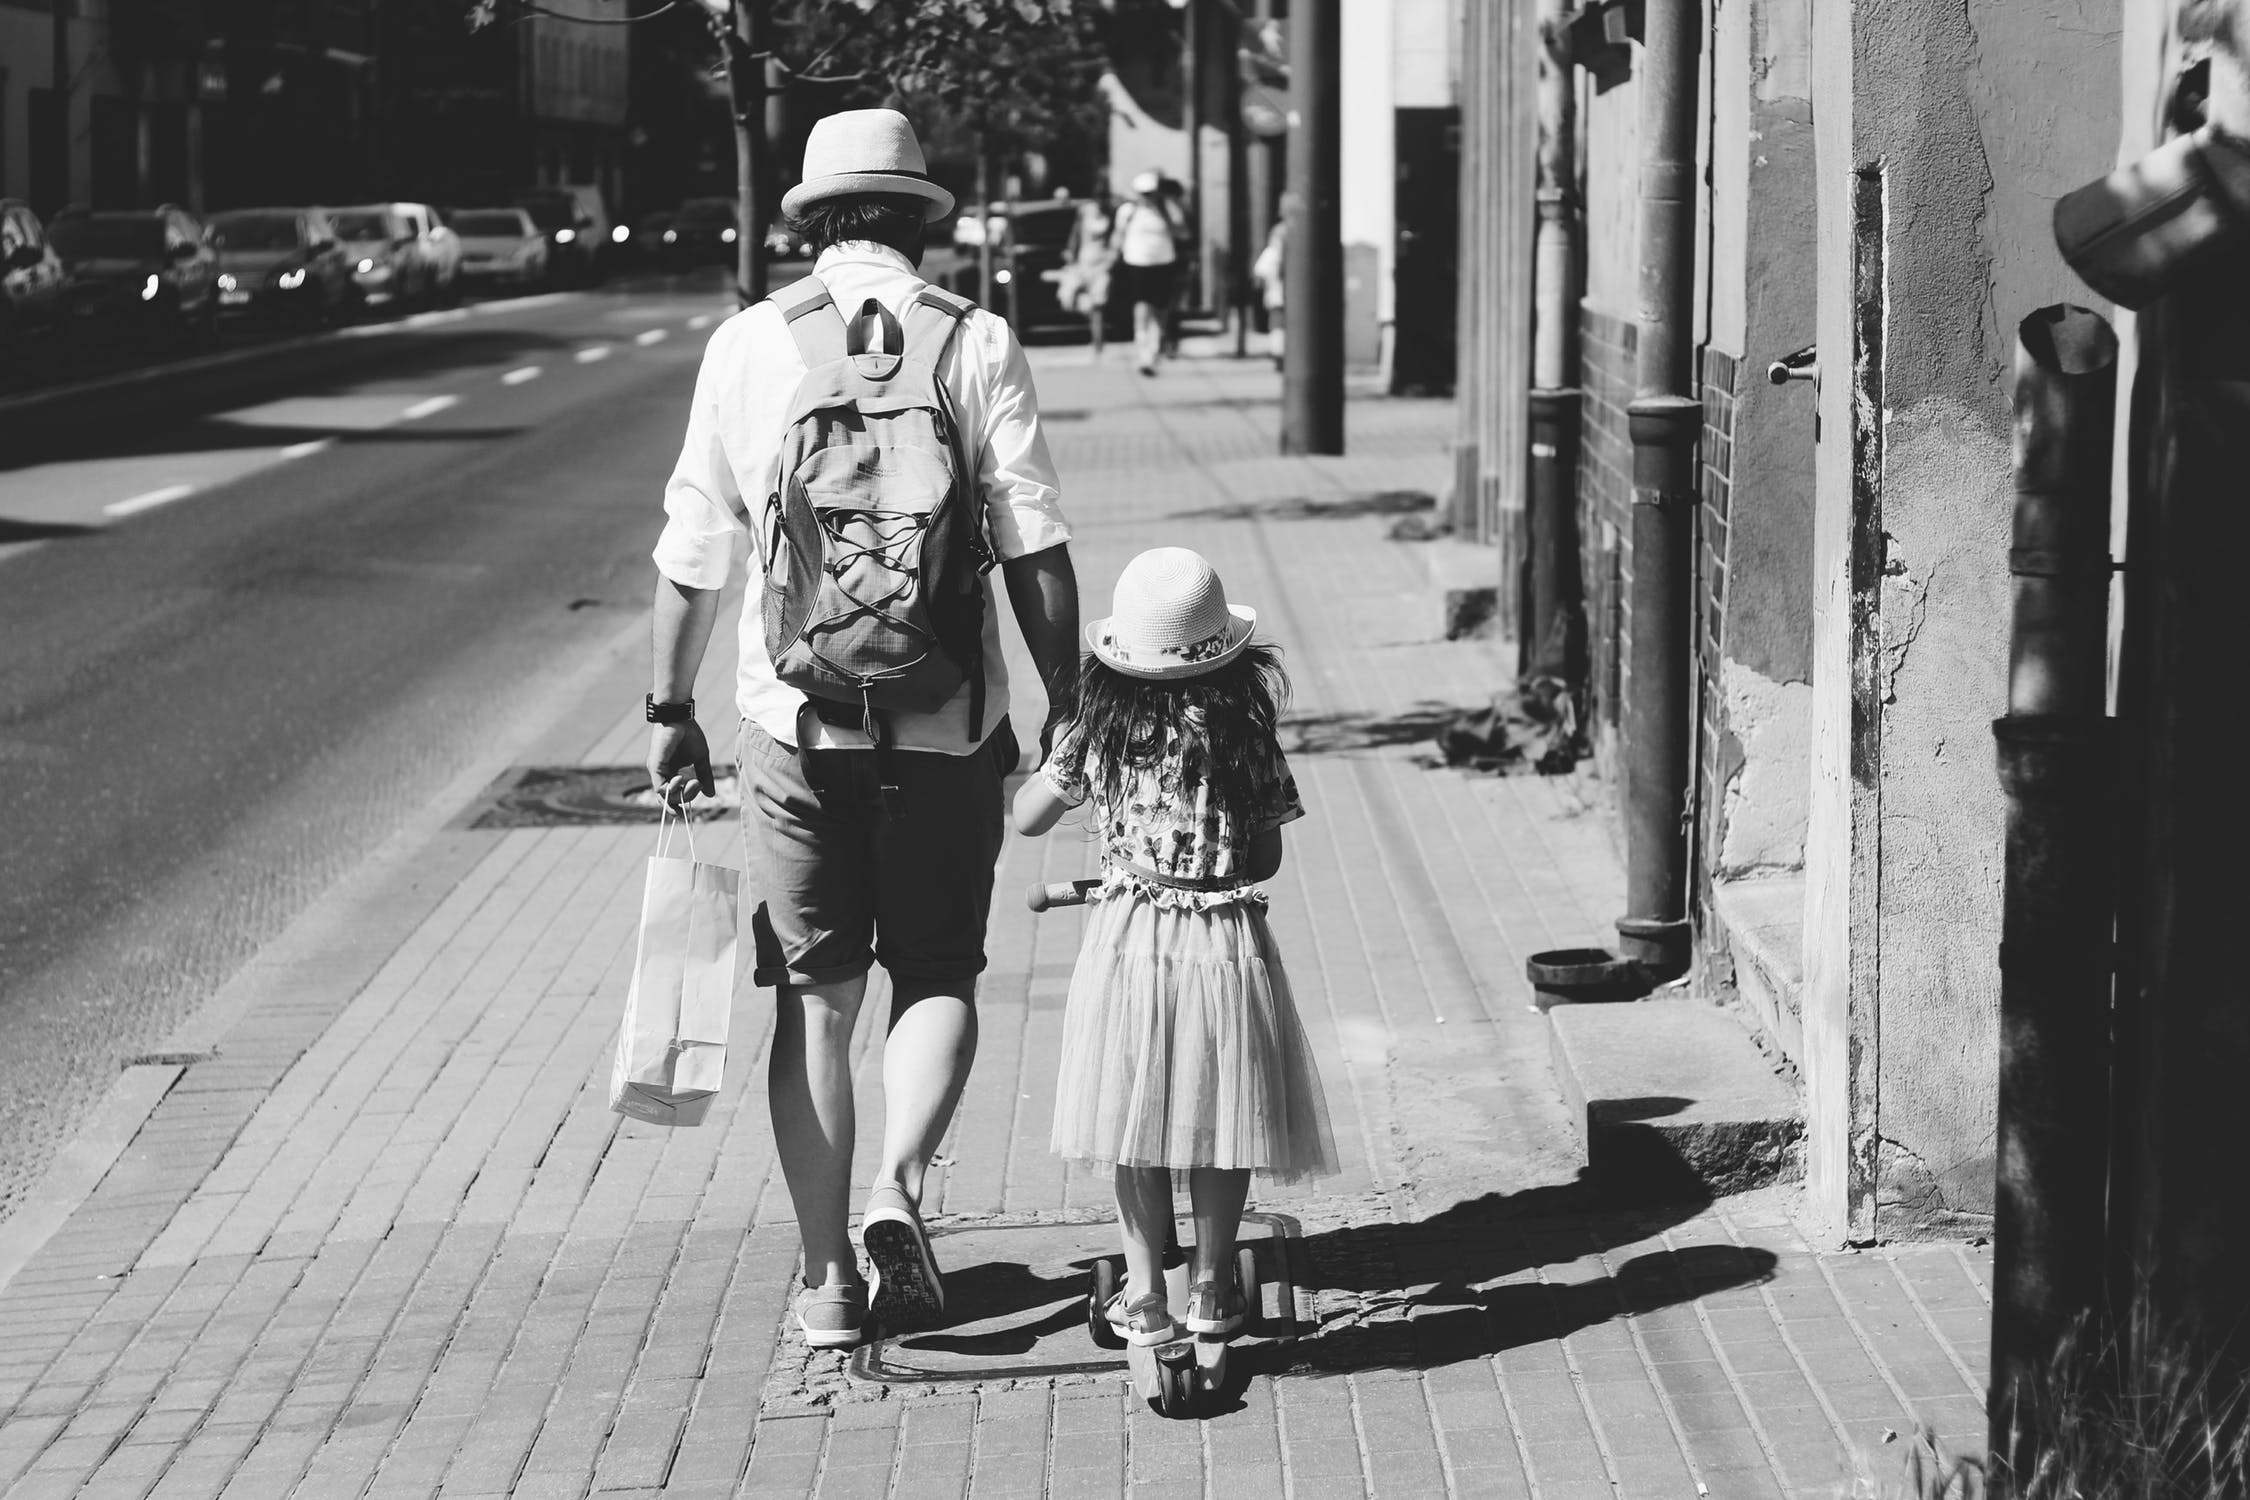 Dependable Dad - Why fathers are choosing to spend more time at home raising their children